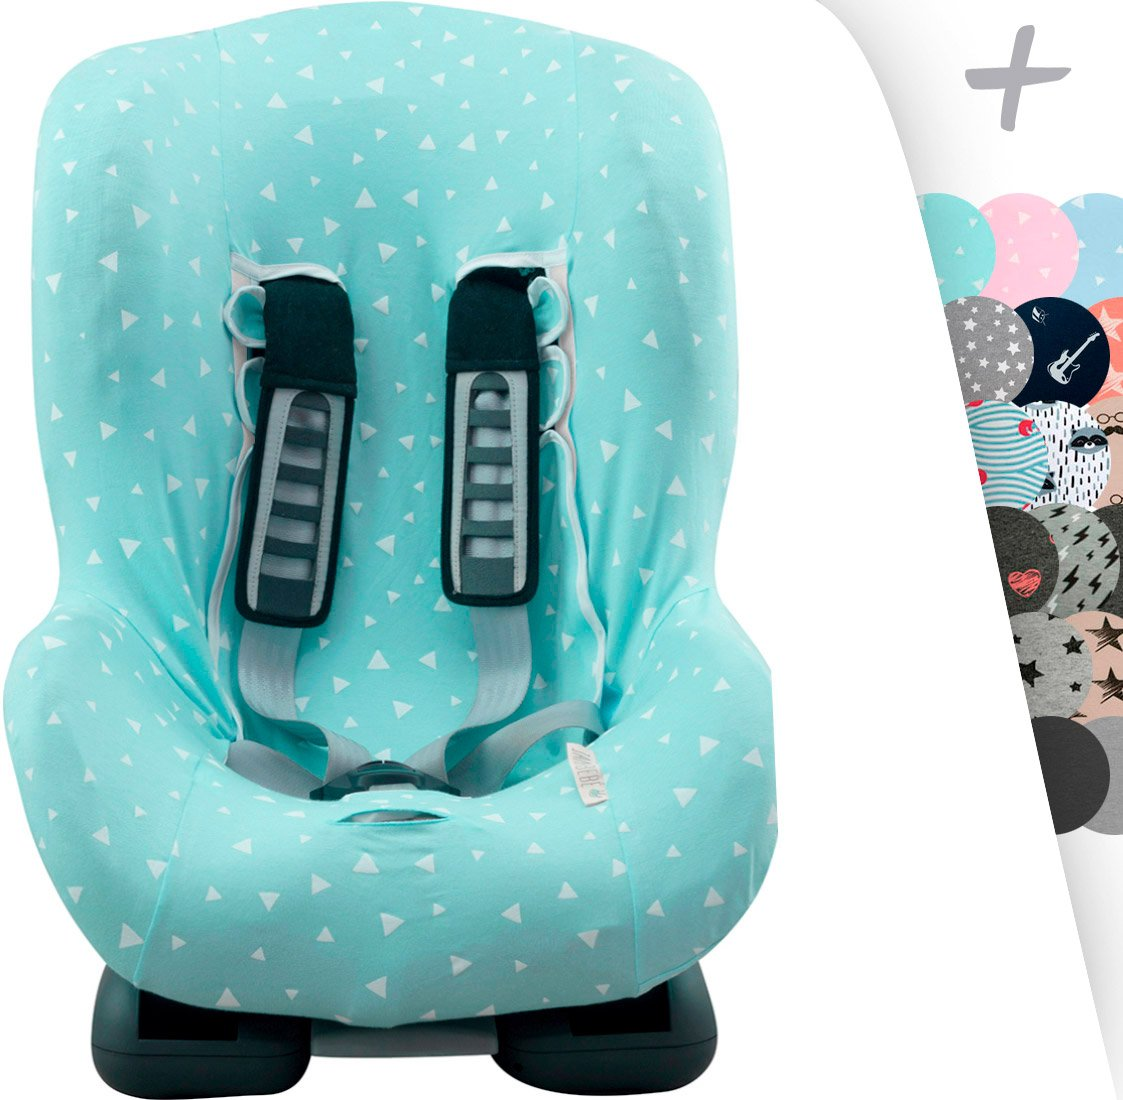 Universal Car Seat Cover Liner for Child's Group 1, 2 y 3 Janabebe Romer Bitax, Maxi Cosi, Cybex (Black Series)